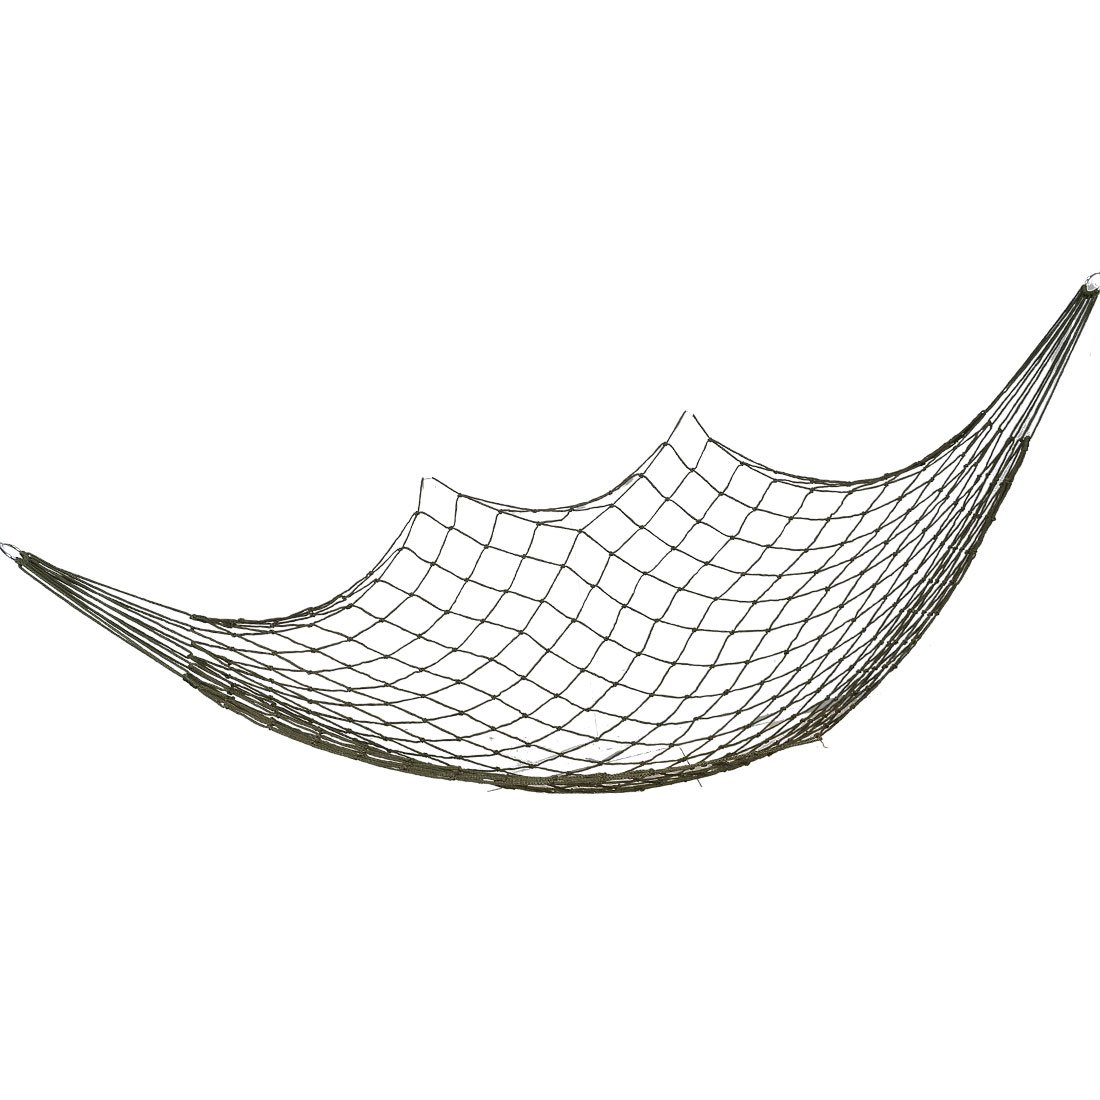 Yard Hiking Backpacking MoKo Camping Hammock Outdoor Double Parachute Nylon 2 Person Portable Lightweight Hammock Swing 118 x 78 with Straps Hold Up to 440Lbs for Travel Beach